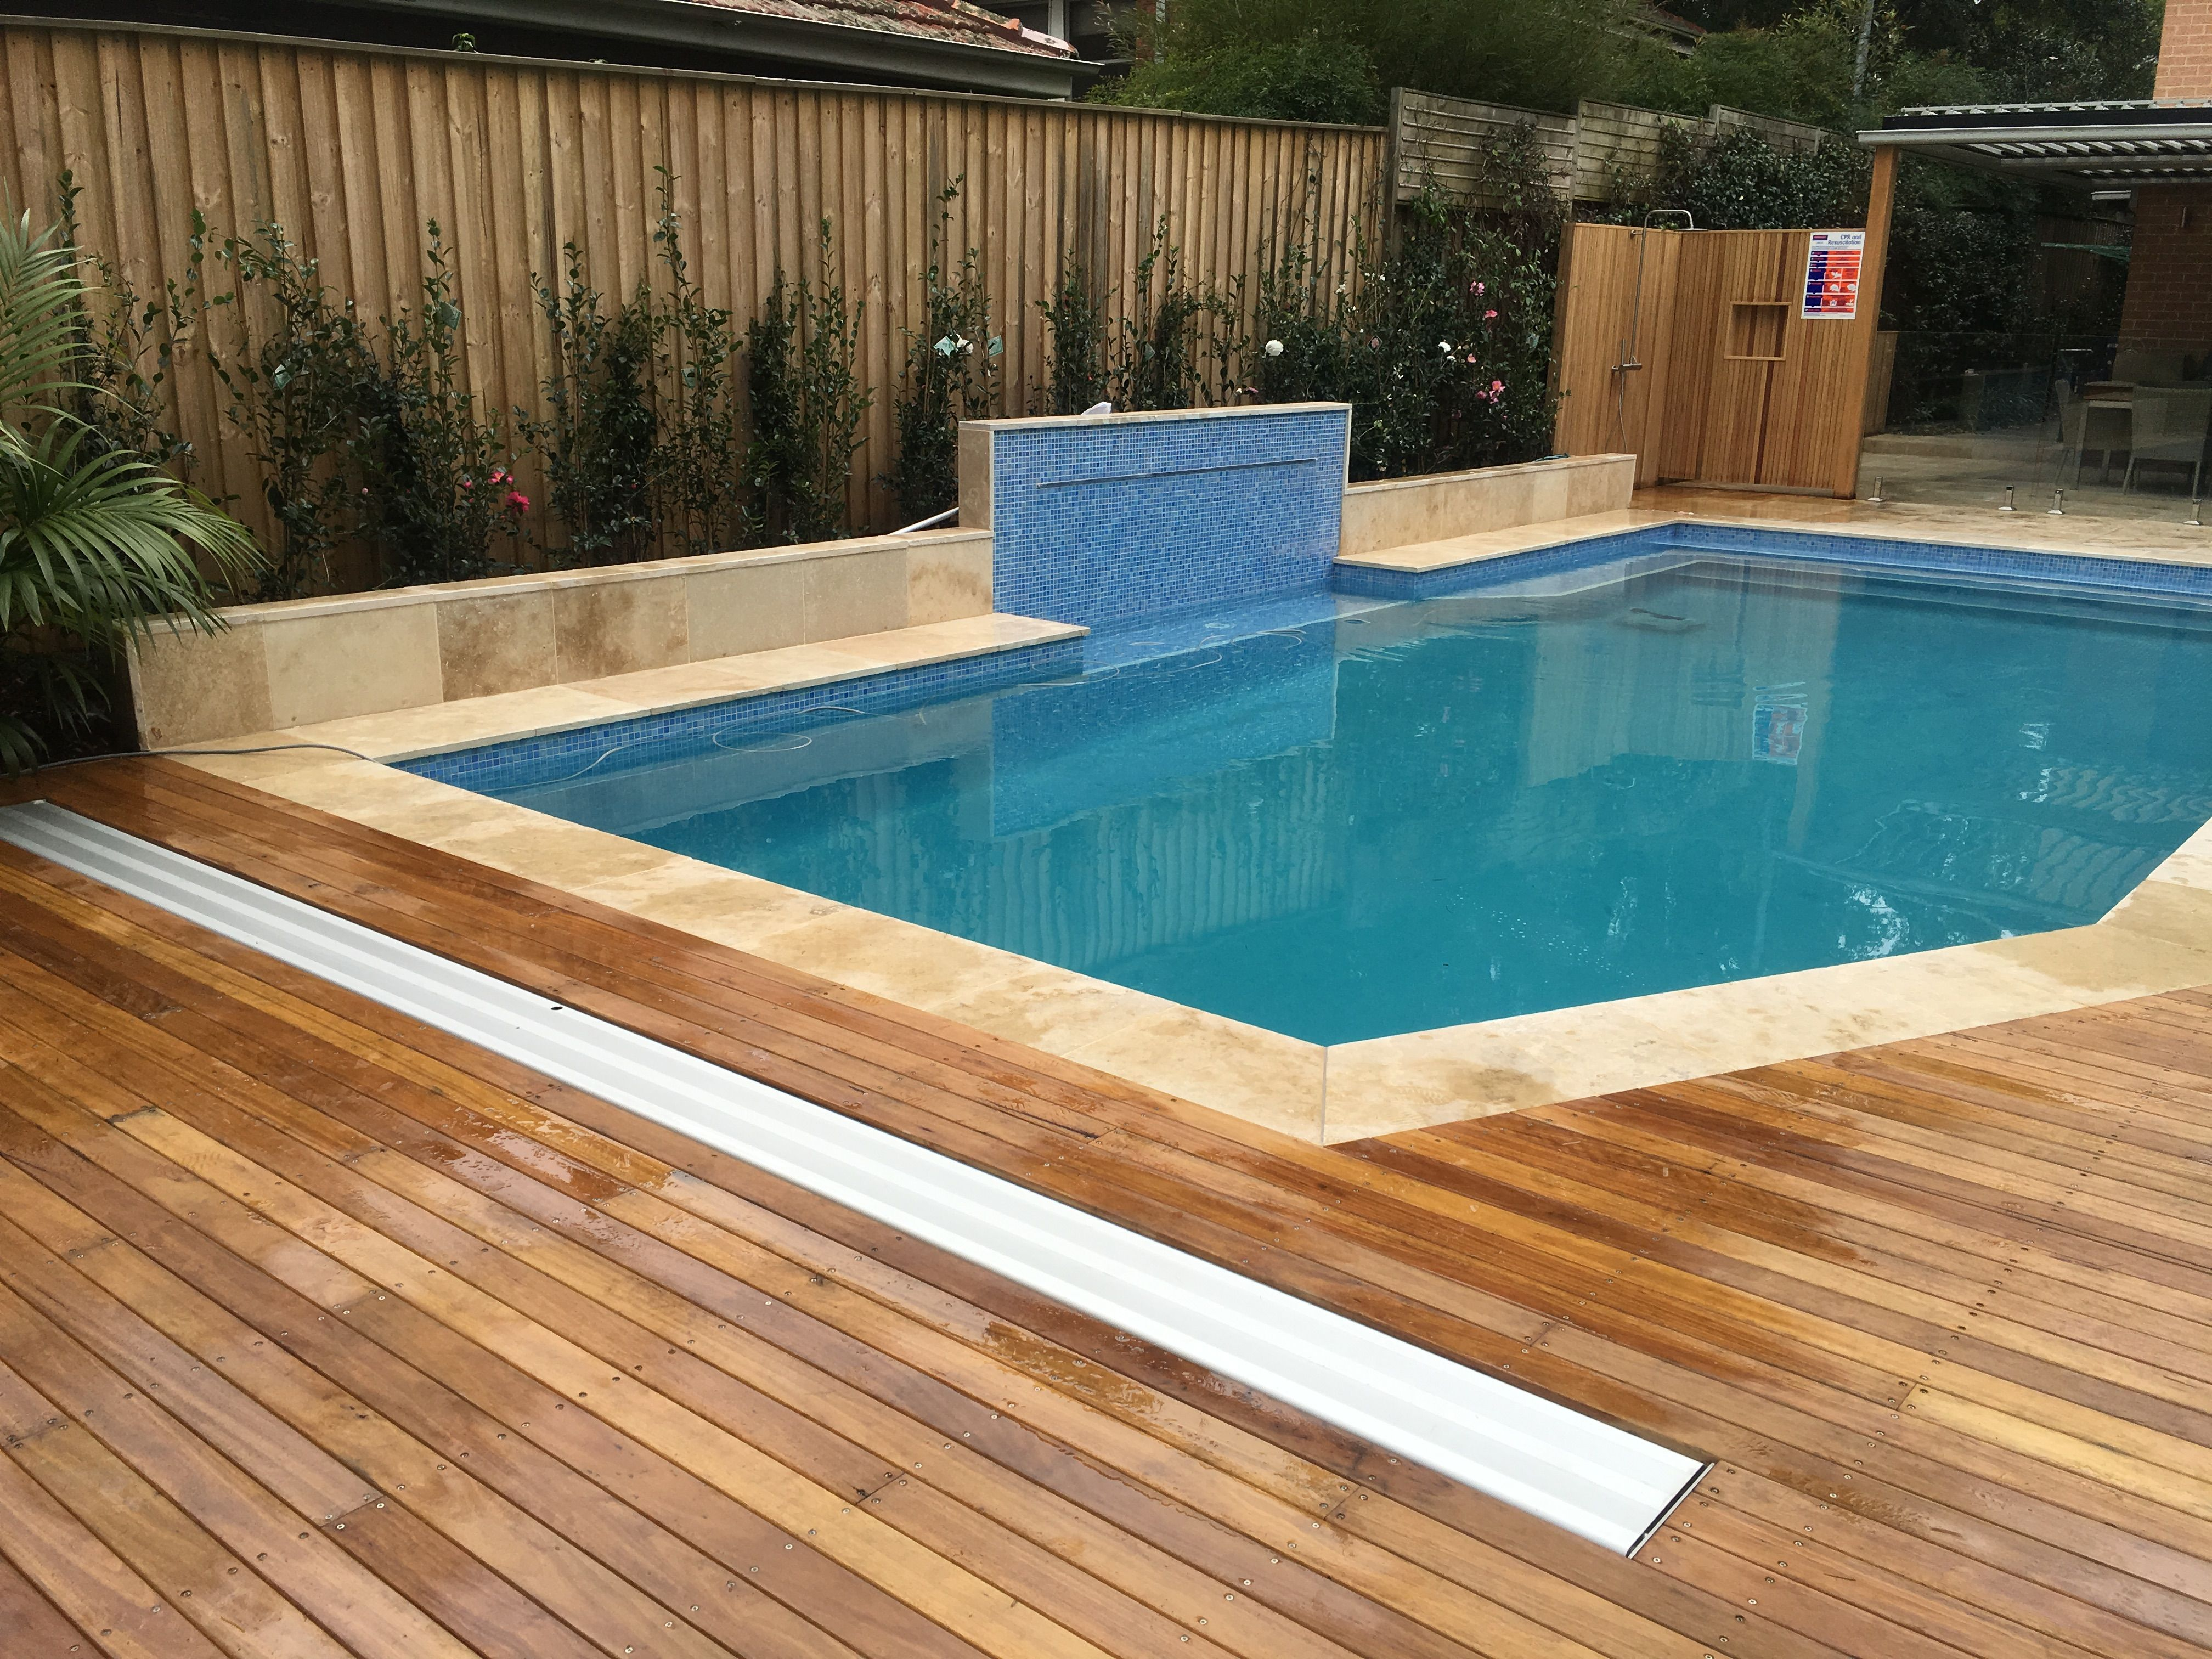 Downunder Hidden Swimming Pool Cover Rollers Everyone Knows How Great Pool Covers Are For